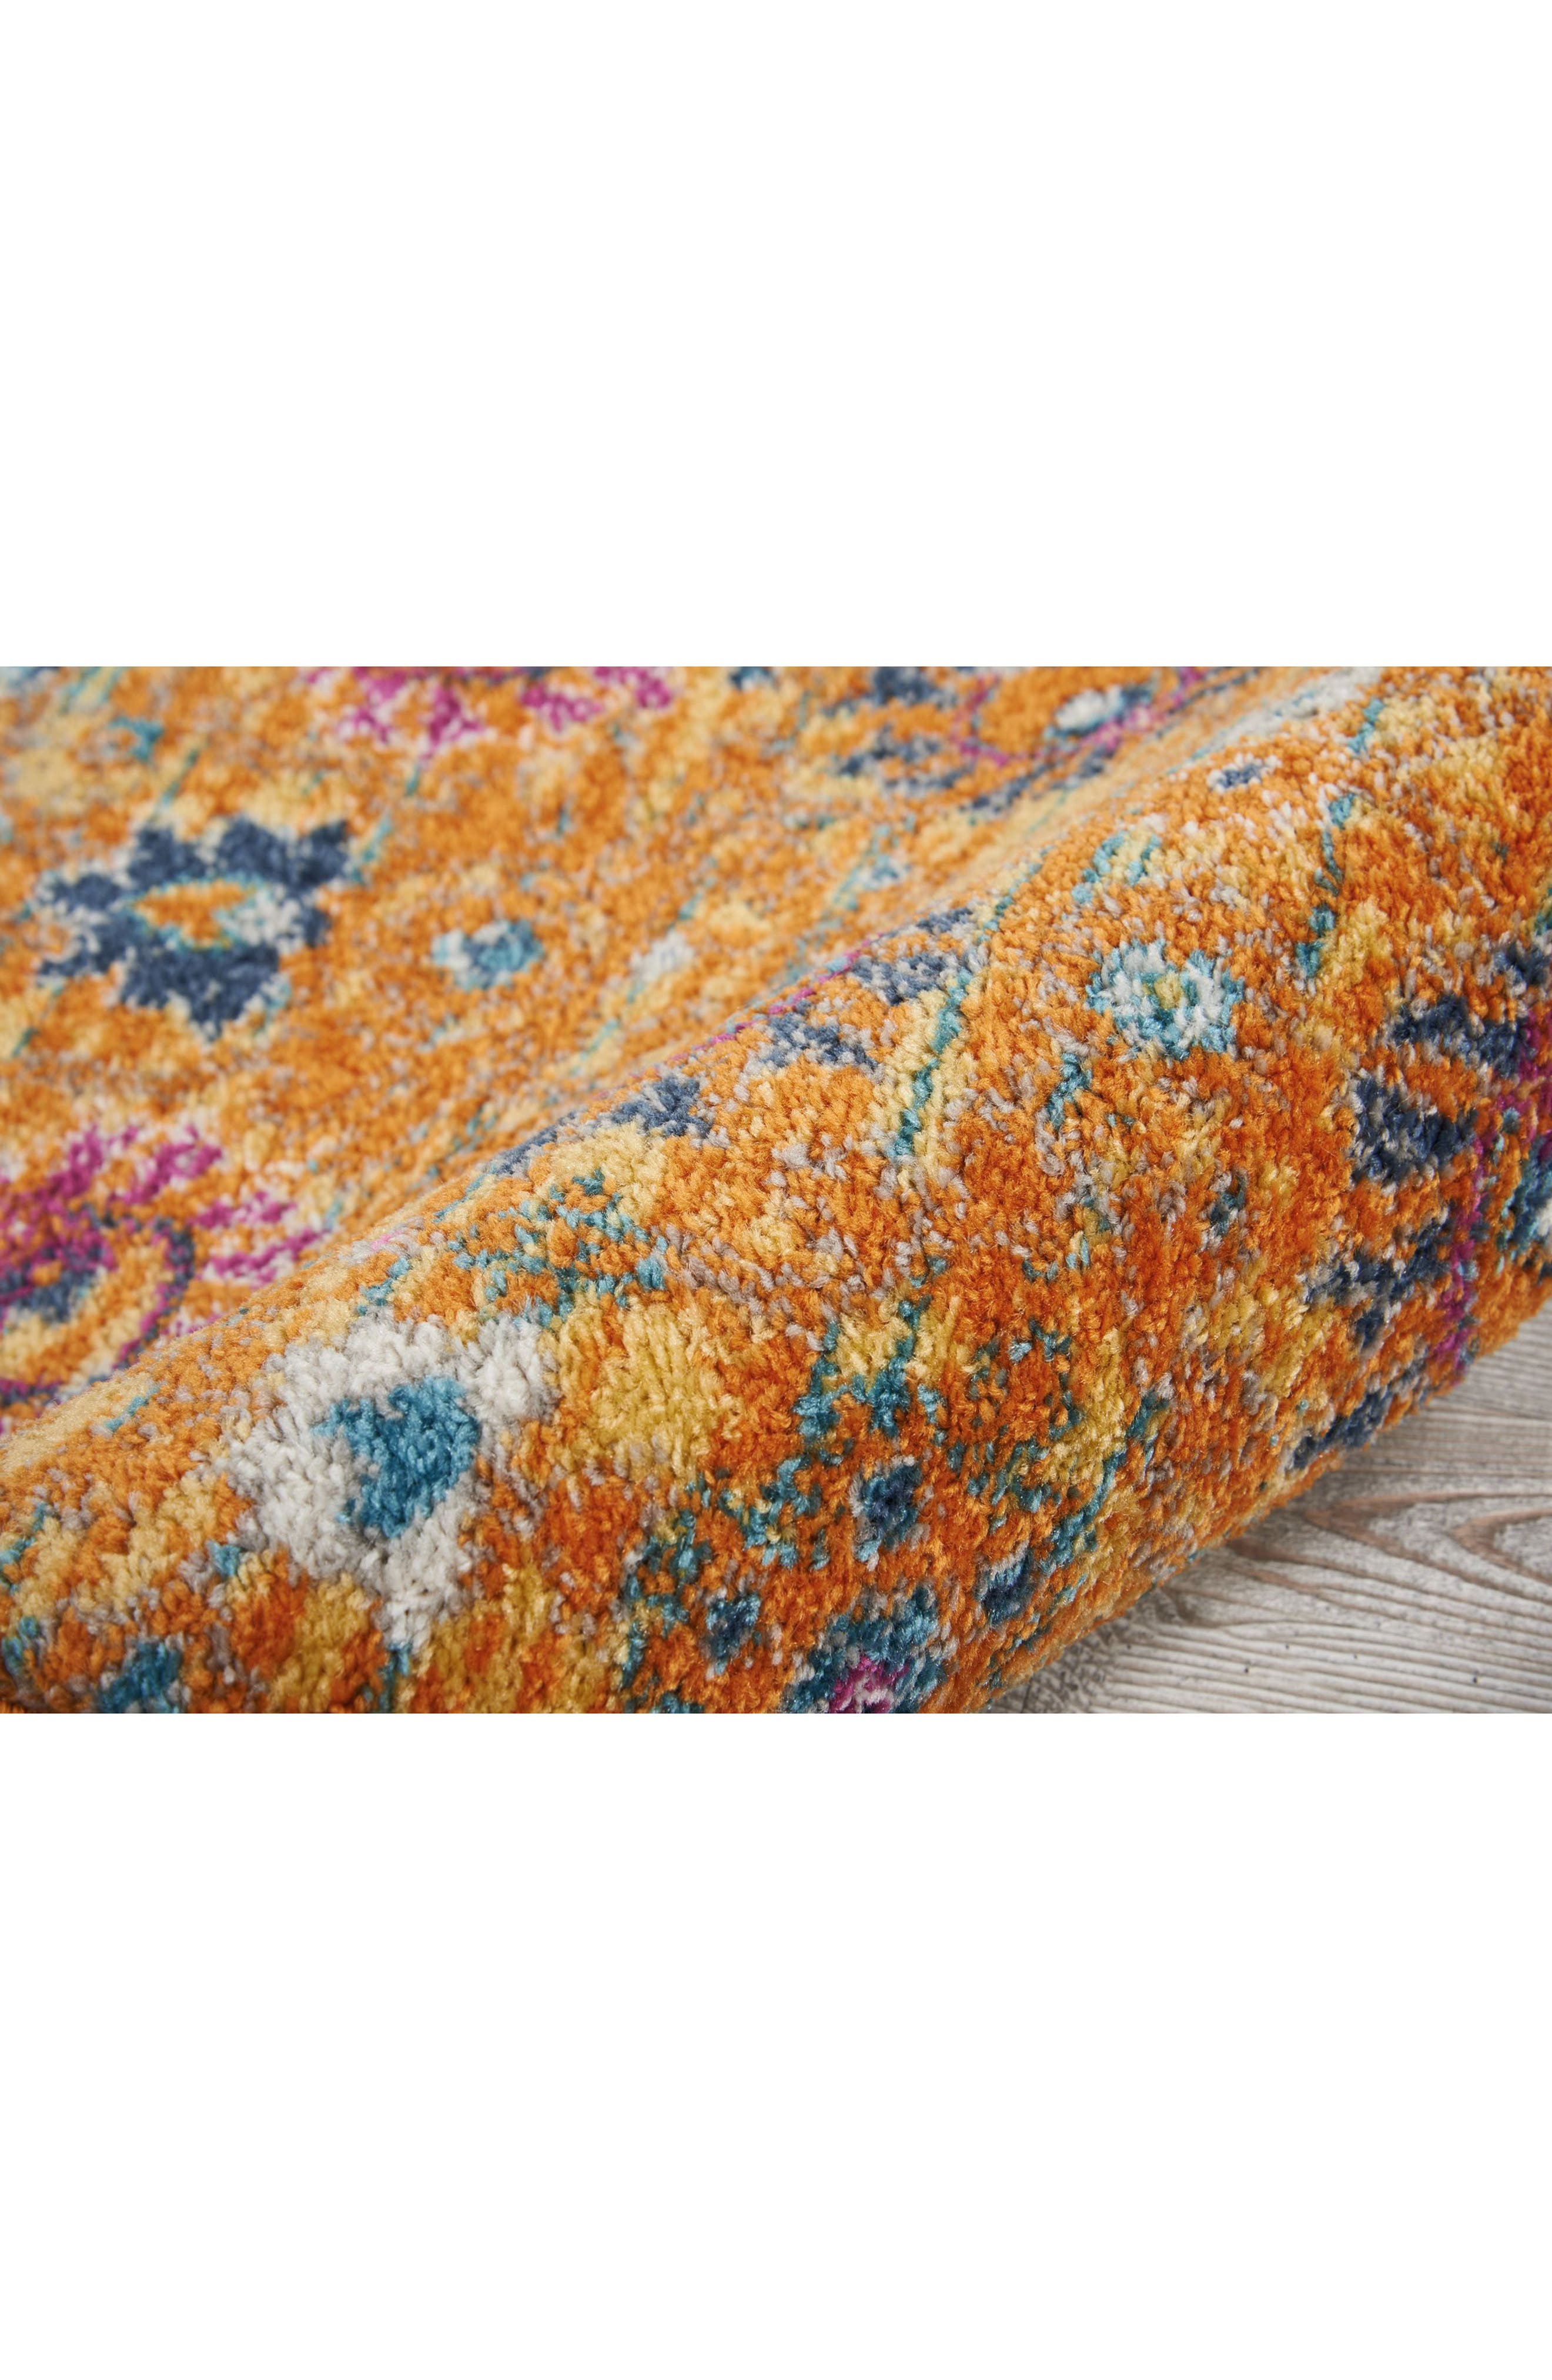 Sunburst Rug,                             Alternate thumbnail 2, color,                             800